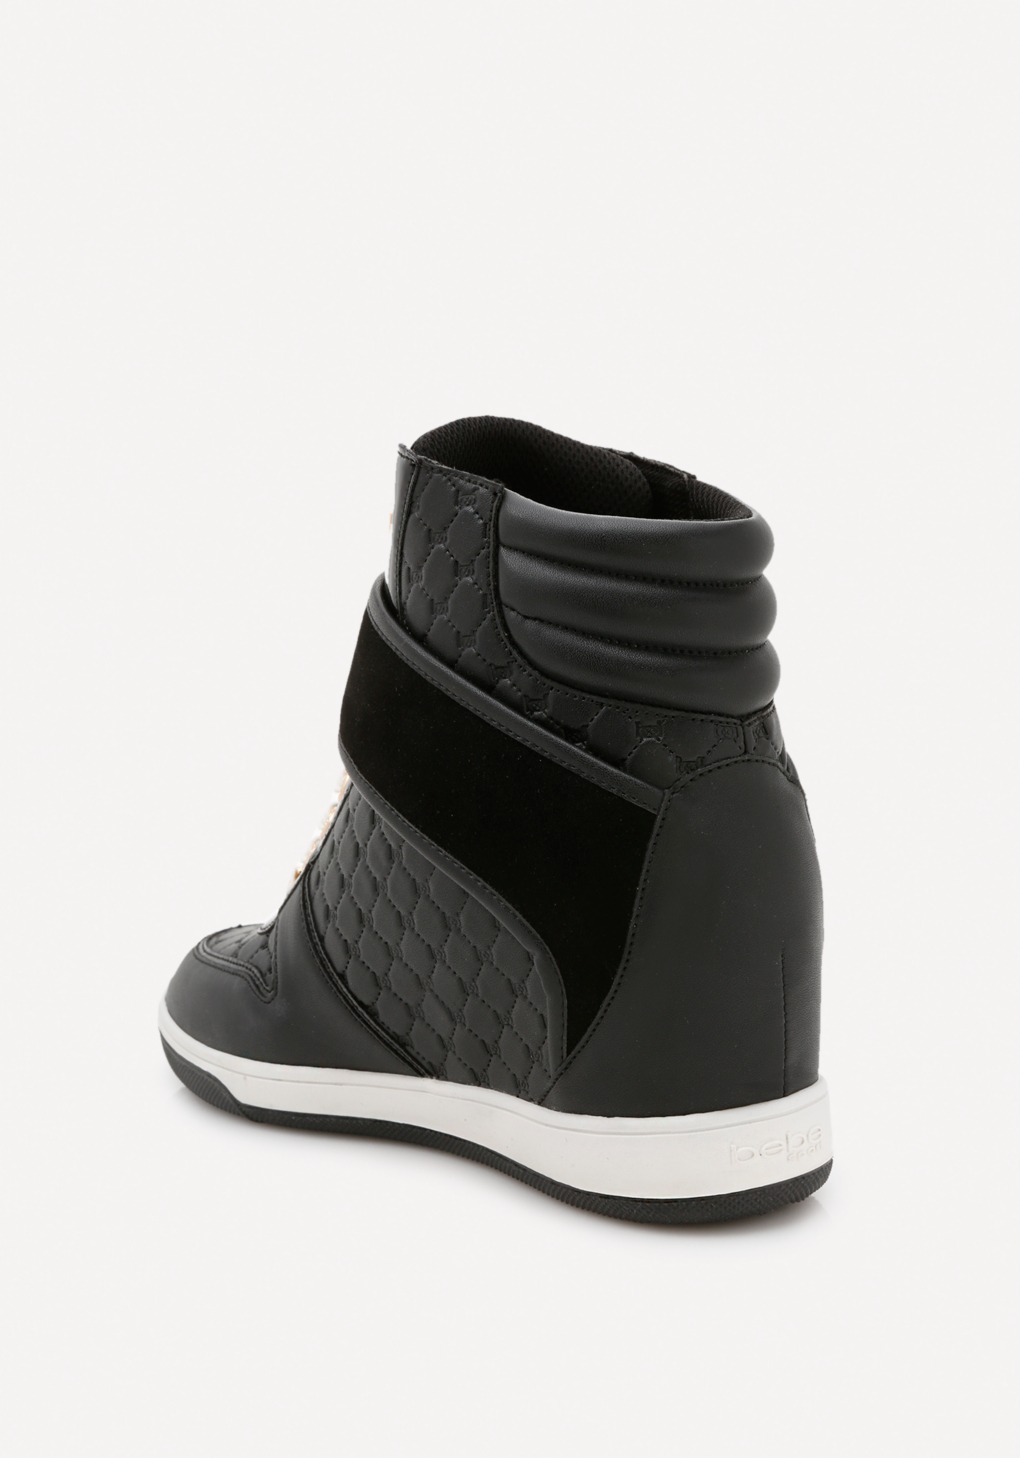 Bebe Synthetic Colby High Top Sneakers in Black